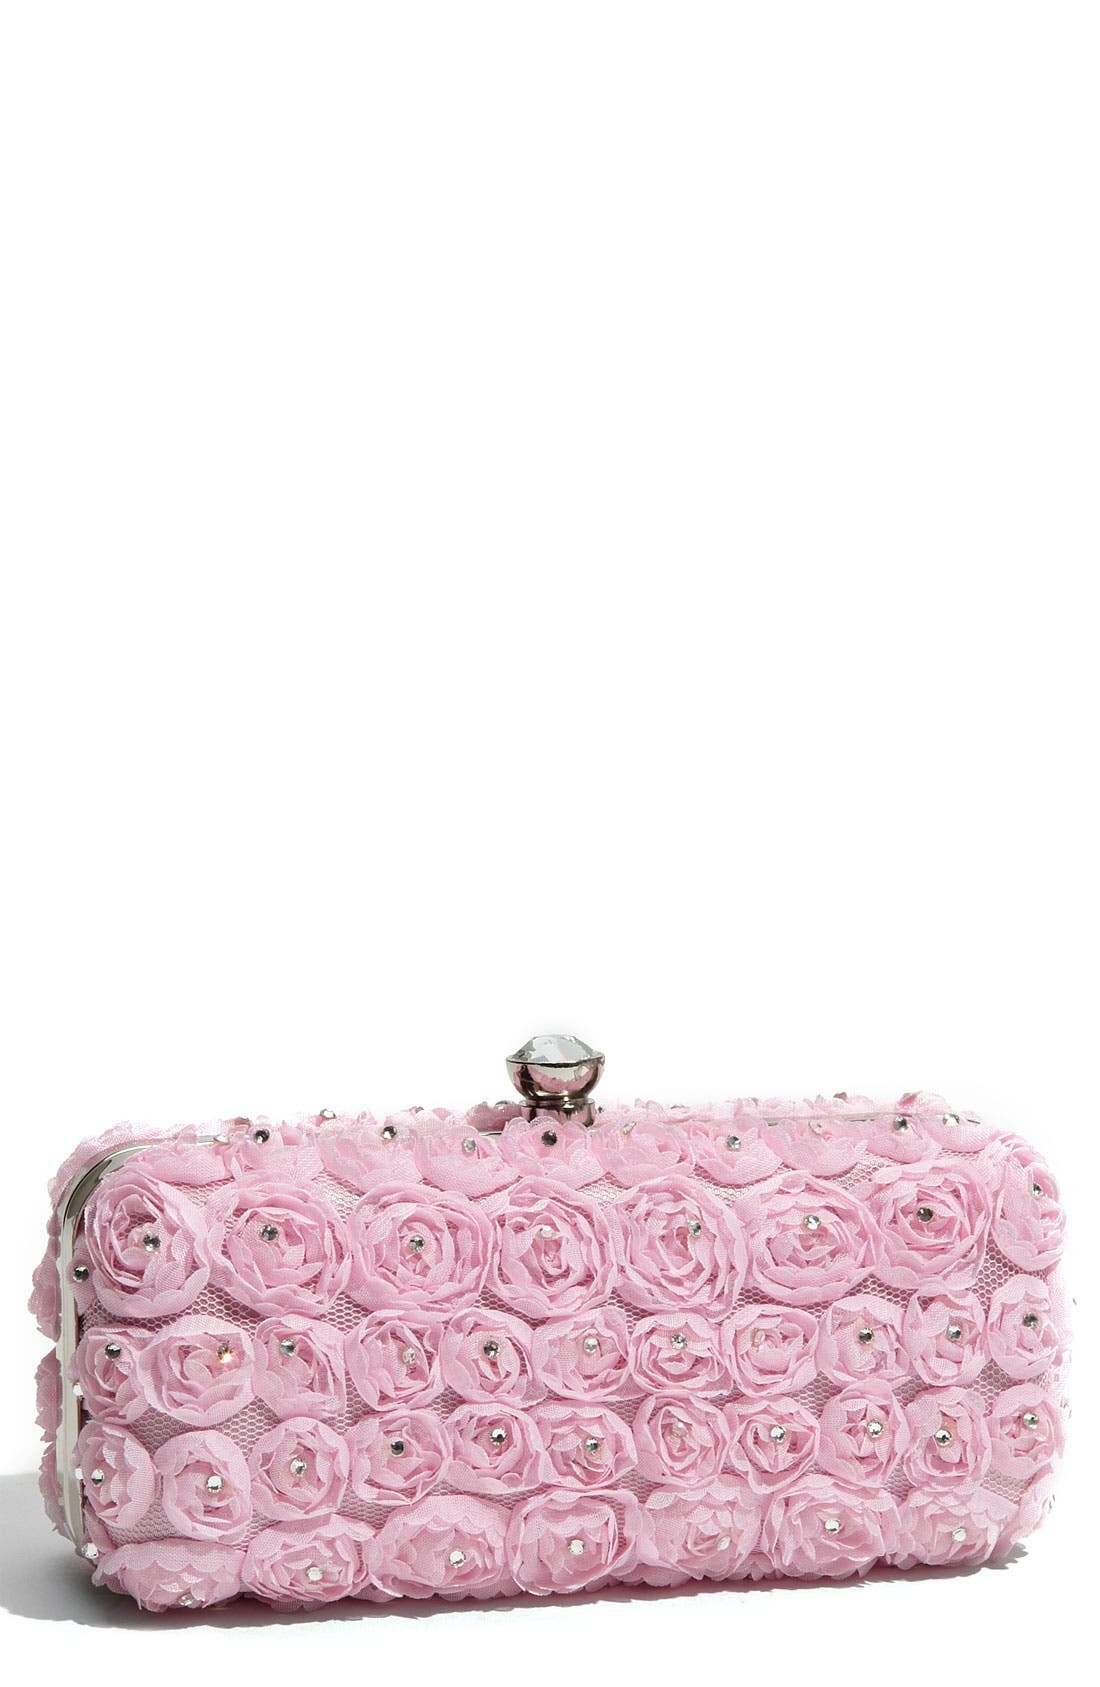 Main Image - Natasha 'Rose' Minaudiere Box Clutch